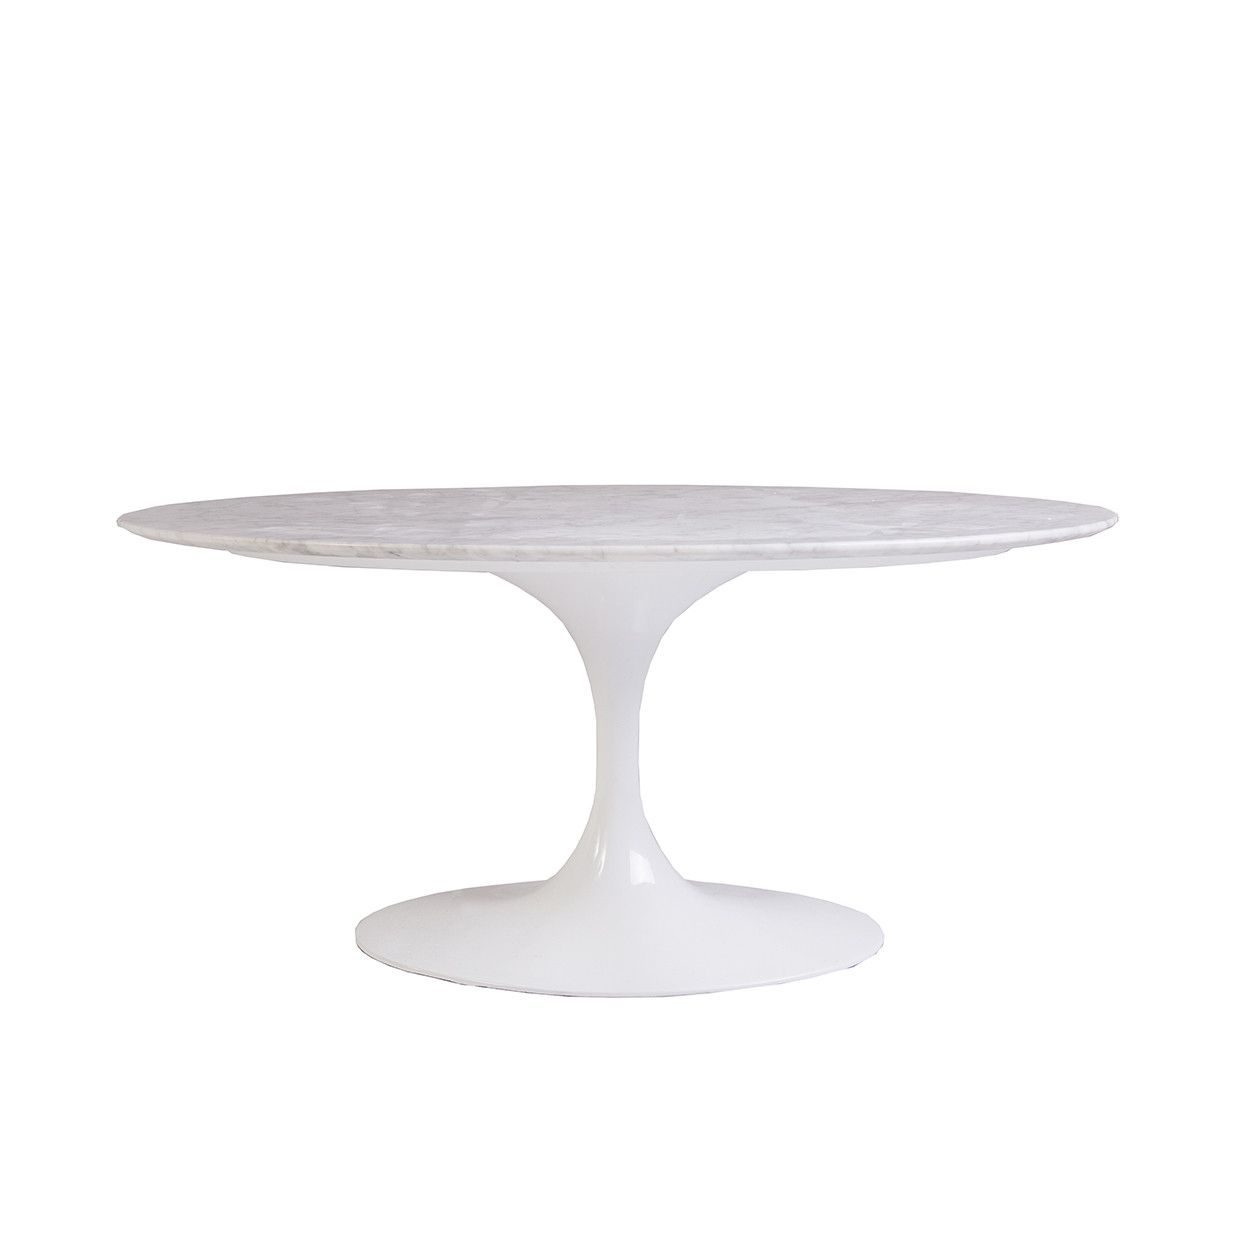 Mid Century Modern Reproduction Marble Tulip Coffee Table 42 Oval Inspired By Ee Tulip Coffee Table Marble Tulip Coffee Table Mid Century Modern Coffee Table